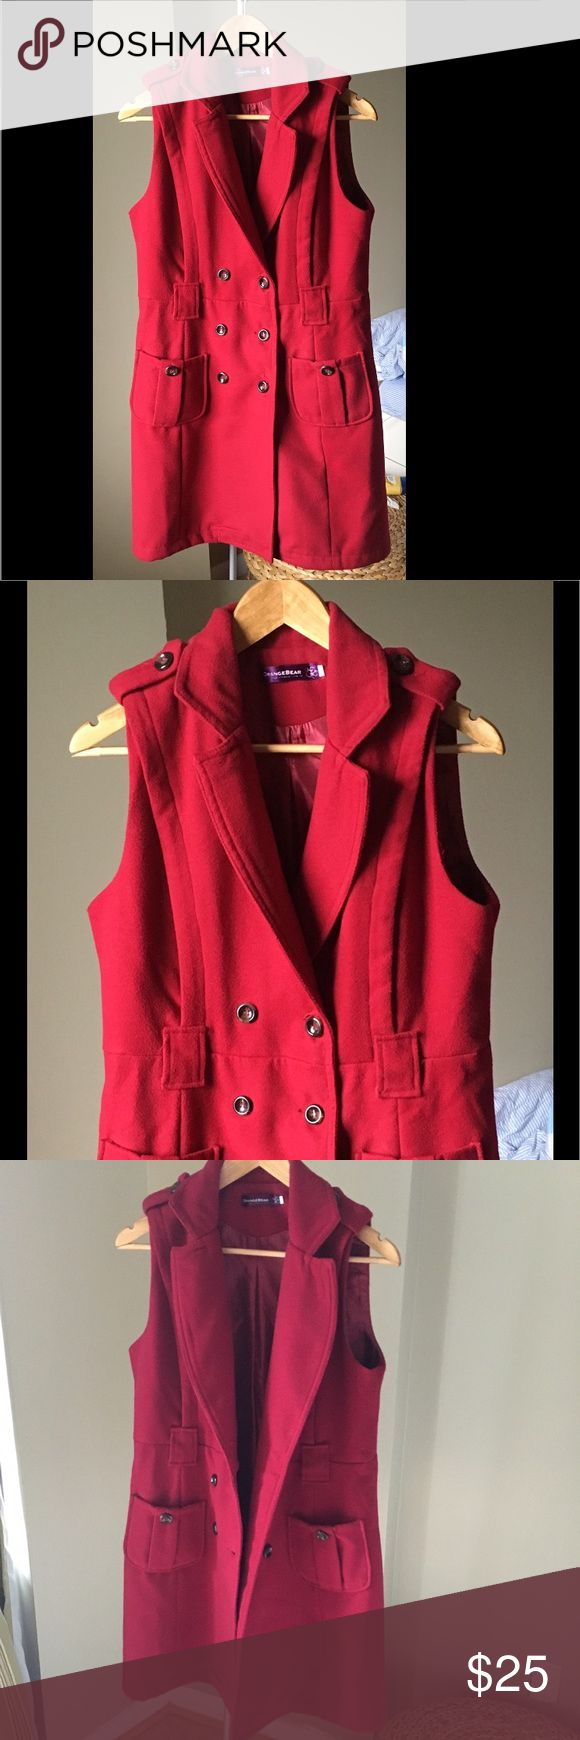 Red/Maroon sleeveless wool coat Vest coat in a beautiful deep shade of red. Size 40/M. Has loops for a belt for a more fitted look. Jackets & Coats Vests